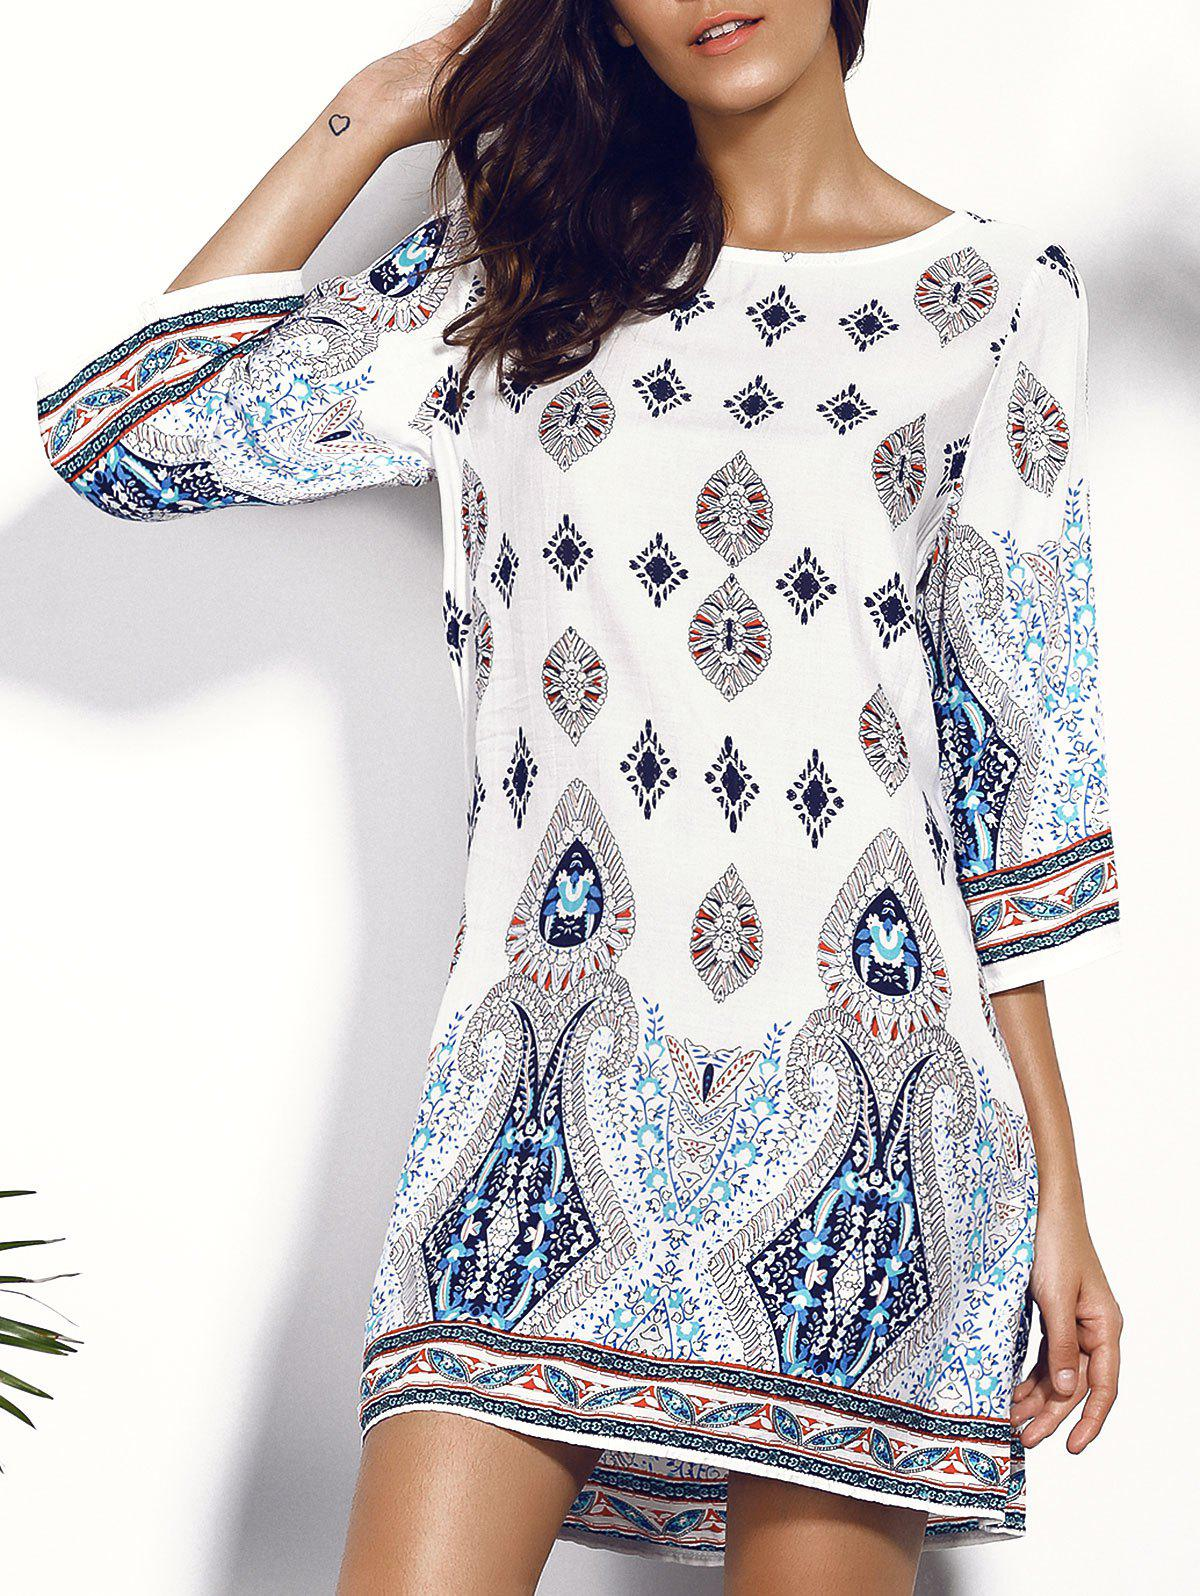 Printed Chiffon Backless Casual Shift DressWOMEN<br><br>Size: M; Color: COLORMIX; Style: Casual; Material: Cotton Blend; Silhouette: Straight; Dresses Length: Mini; Neckline: Scoop Neck; Sleeve Length: Half Sleeves; Pattern Type: Print; With Belt: No; Season: Summer; Weight: 0.150kg; Package Contents: 1 x Dress;